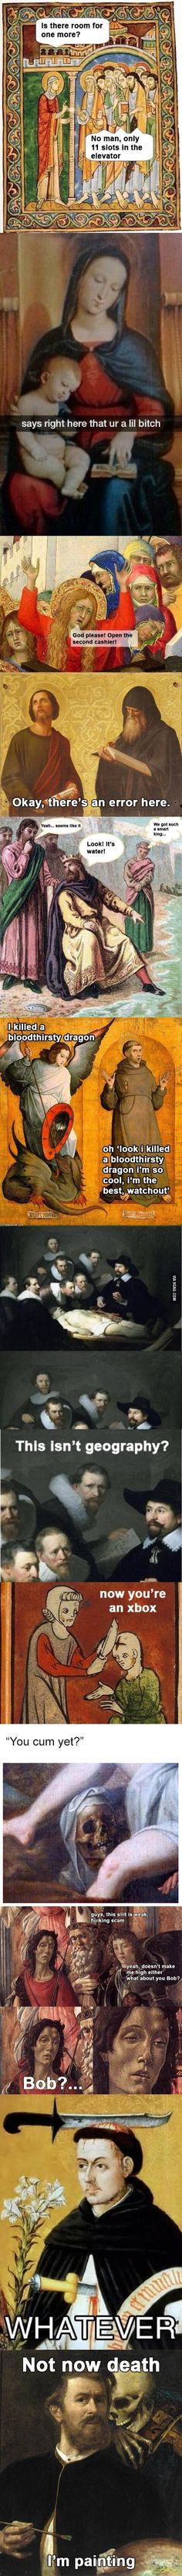 Old Paintings Make So Much More Sense With Subtitles Part I